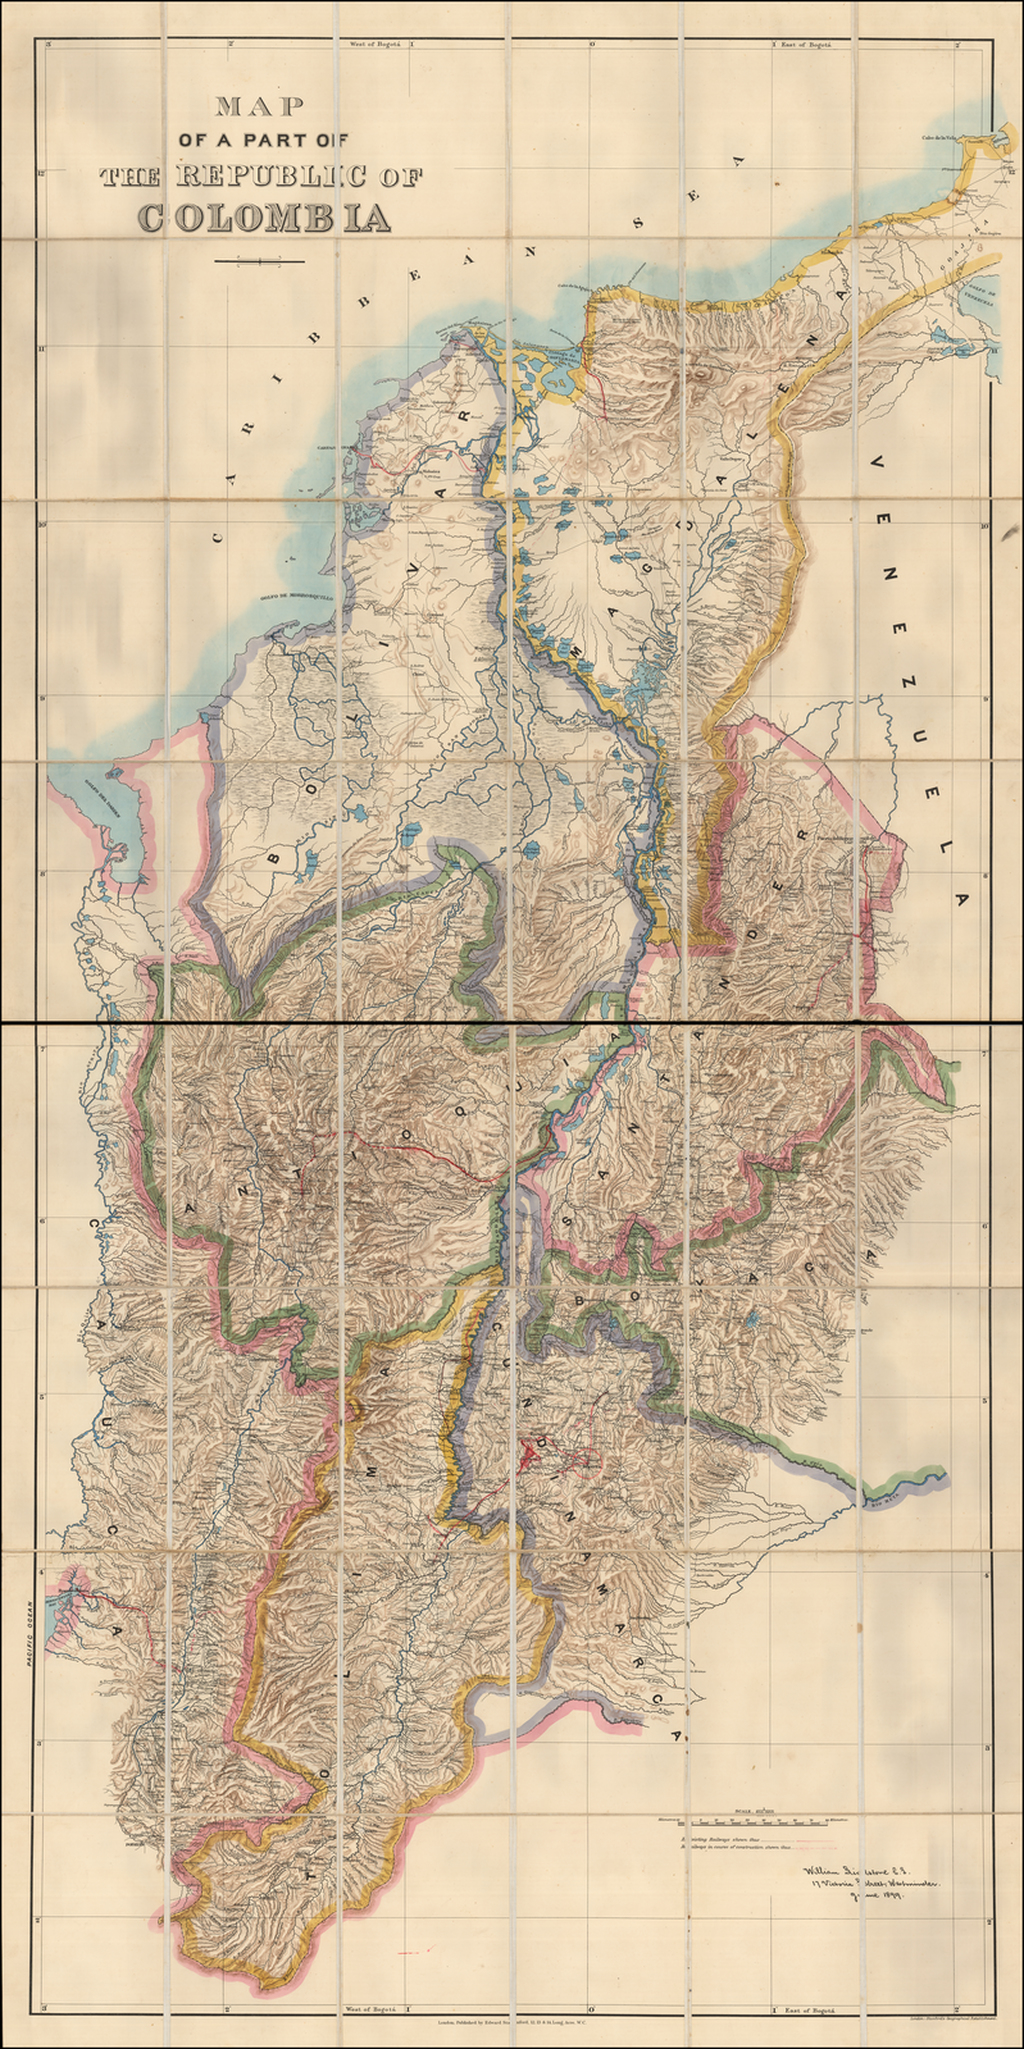 Map of a Part of the Republic of Colombia By Edward Stanford